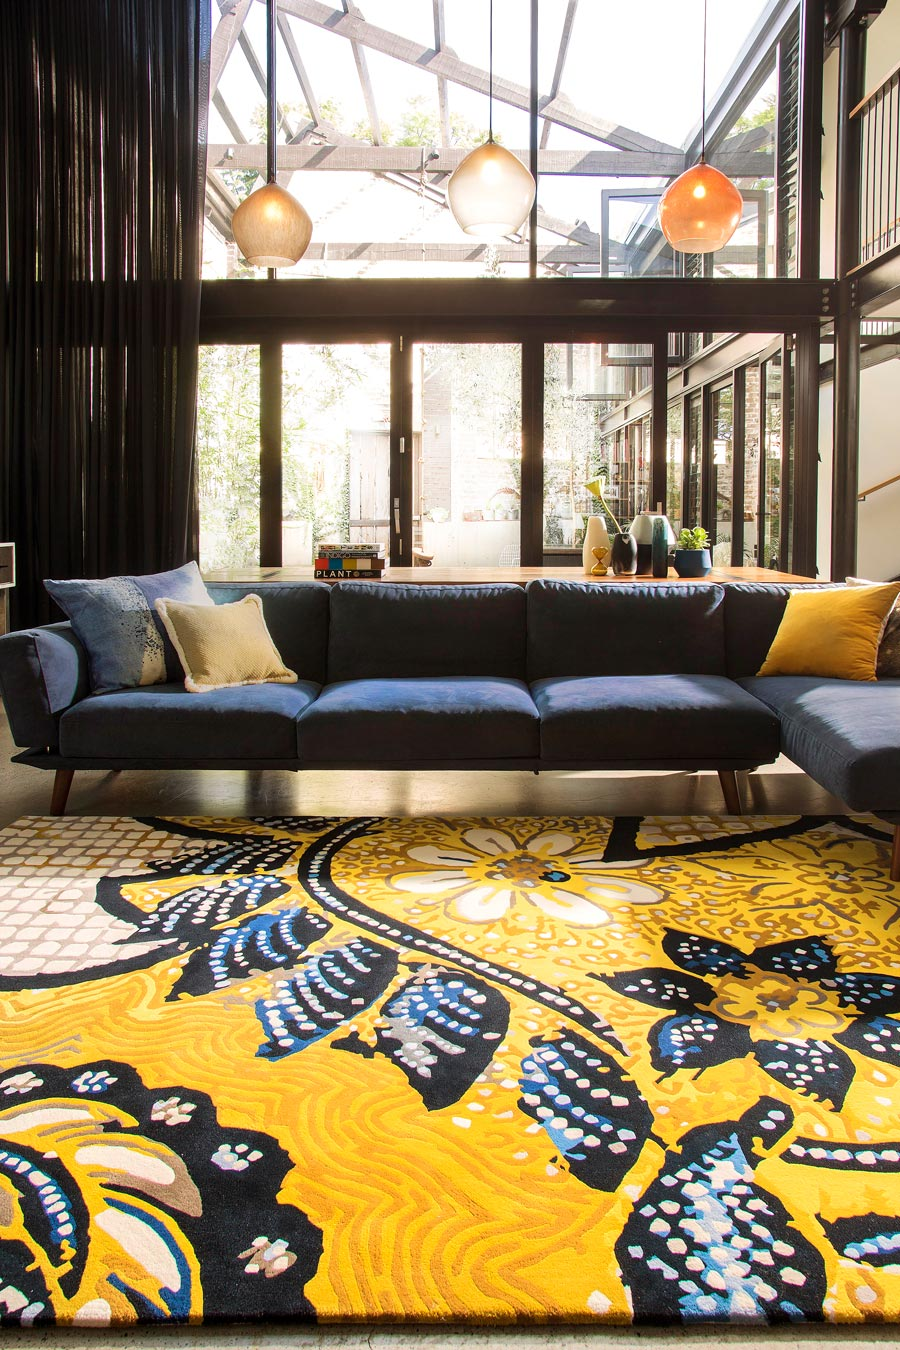 location living room shot of wishing well rug by easton pearson